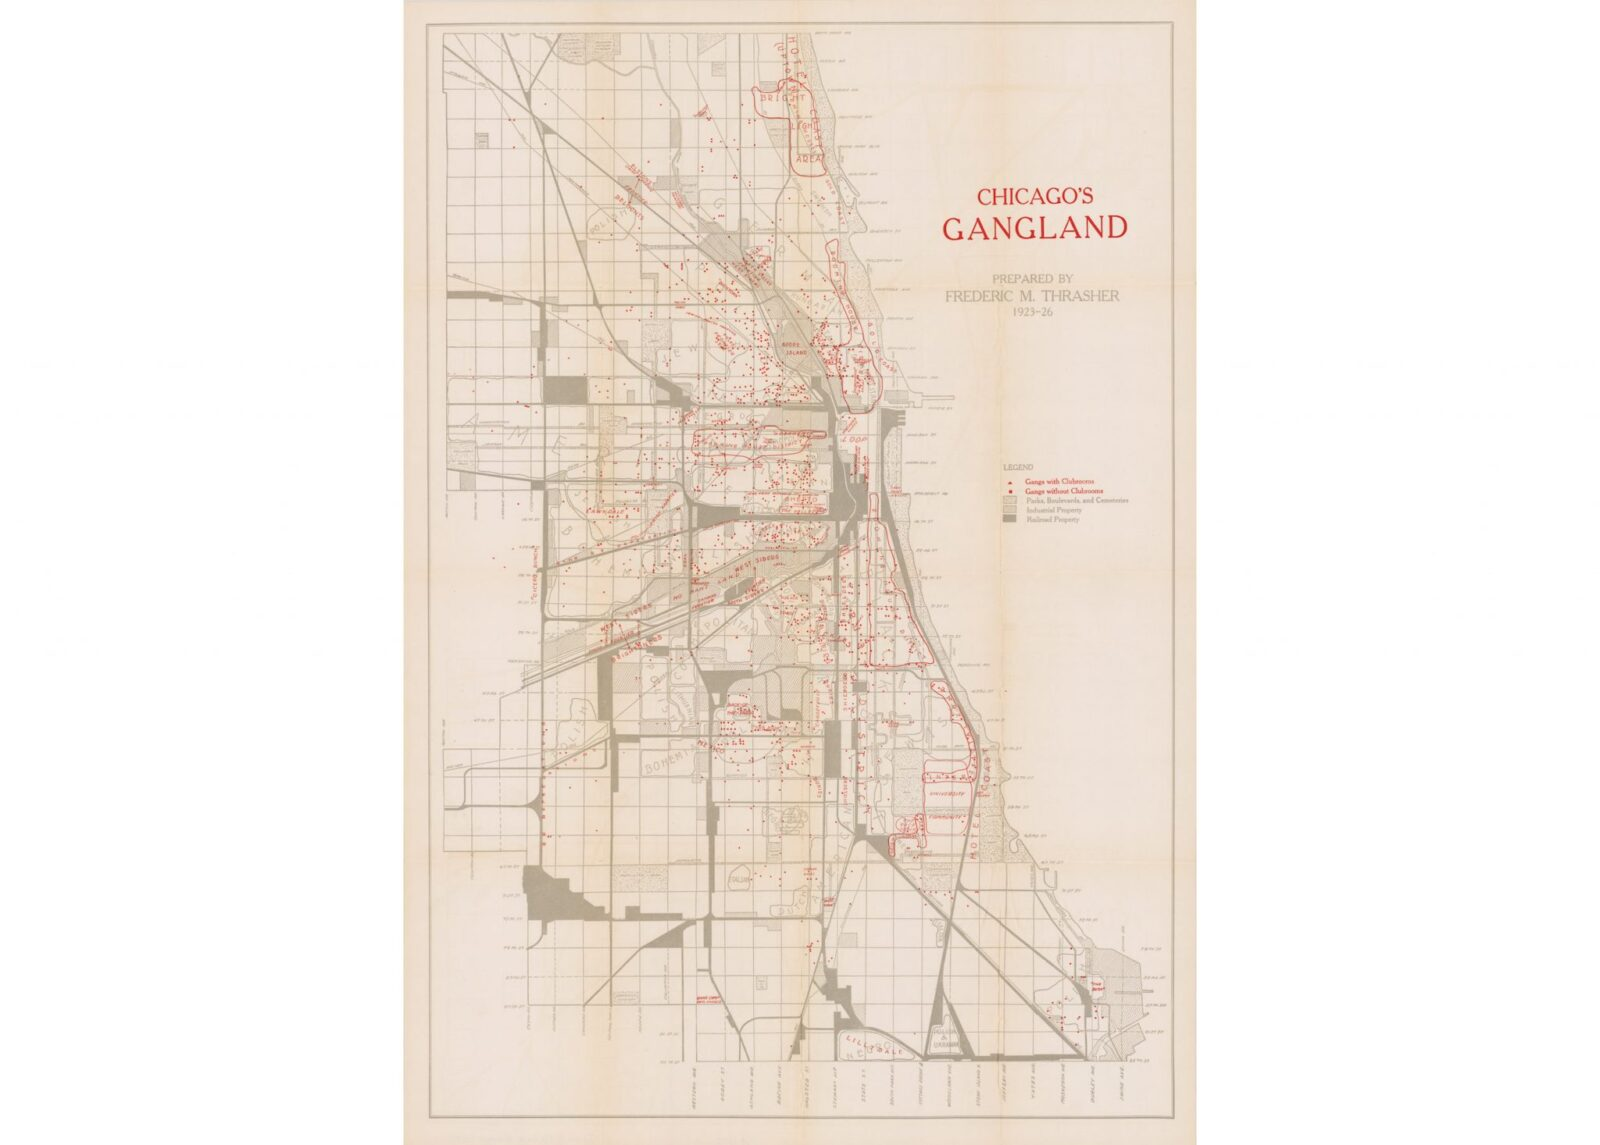 Chicago's Gangland Map Hero 1600x1145 - Chicago's Gangland Map - Circa 1927